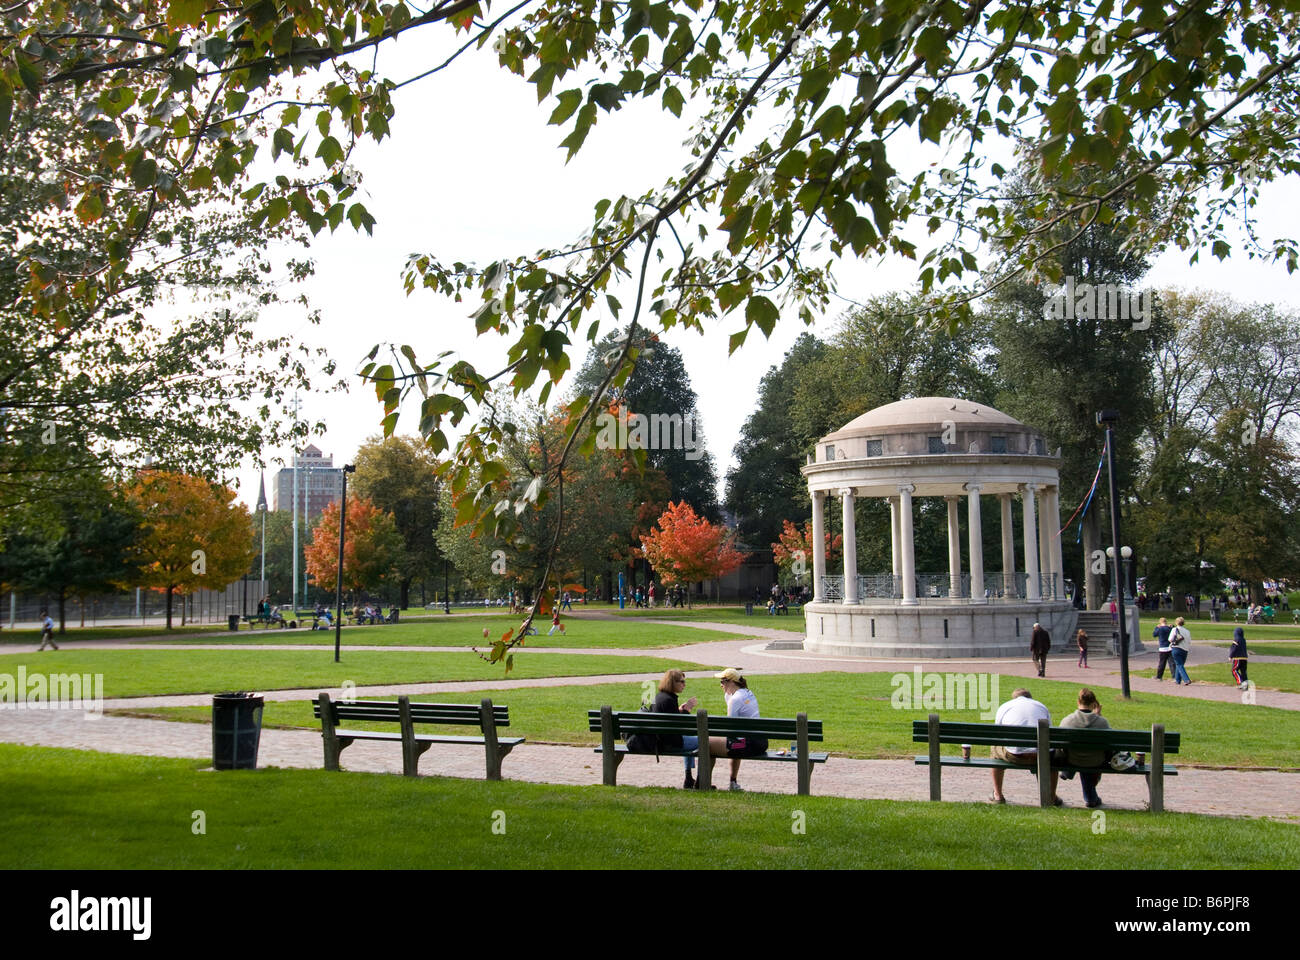 Parkman Bandstand in Boston Common - Stock Image